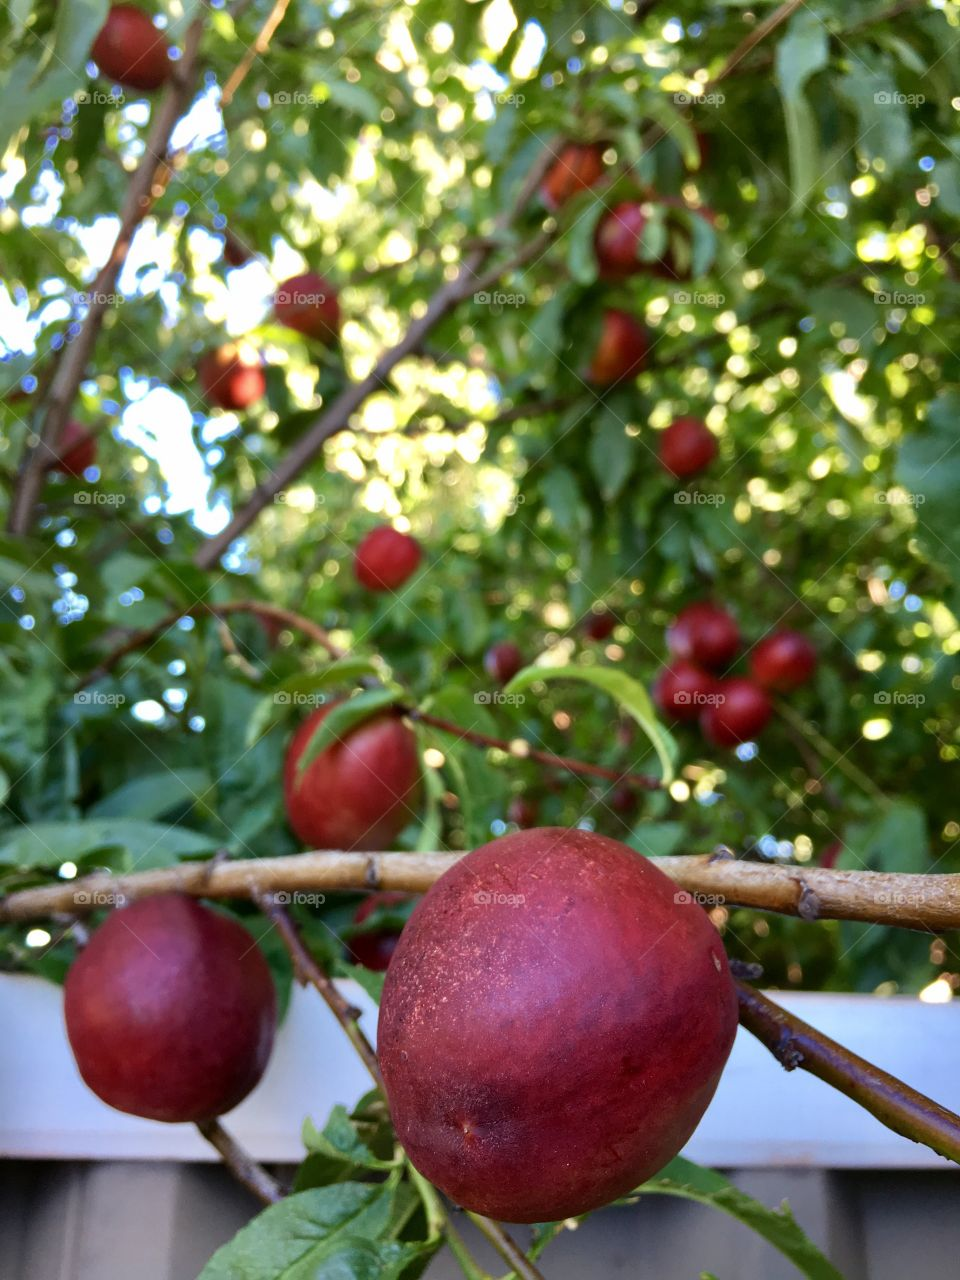 Closeup ripe red nectarines on branch of tree